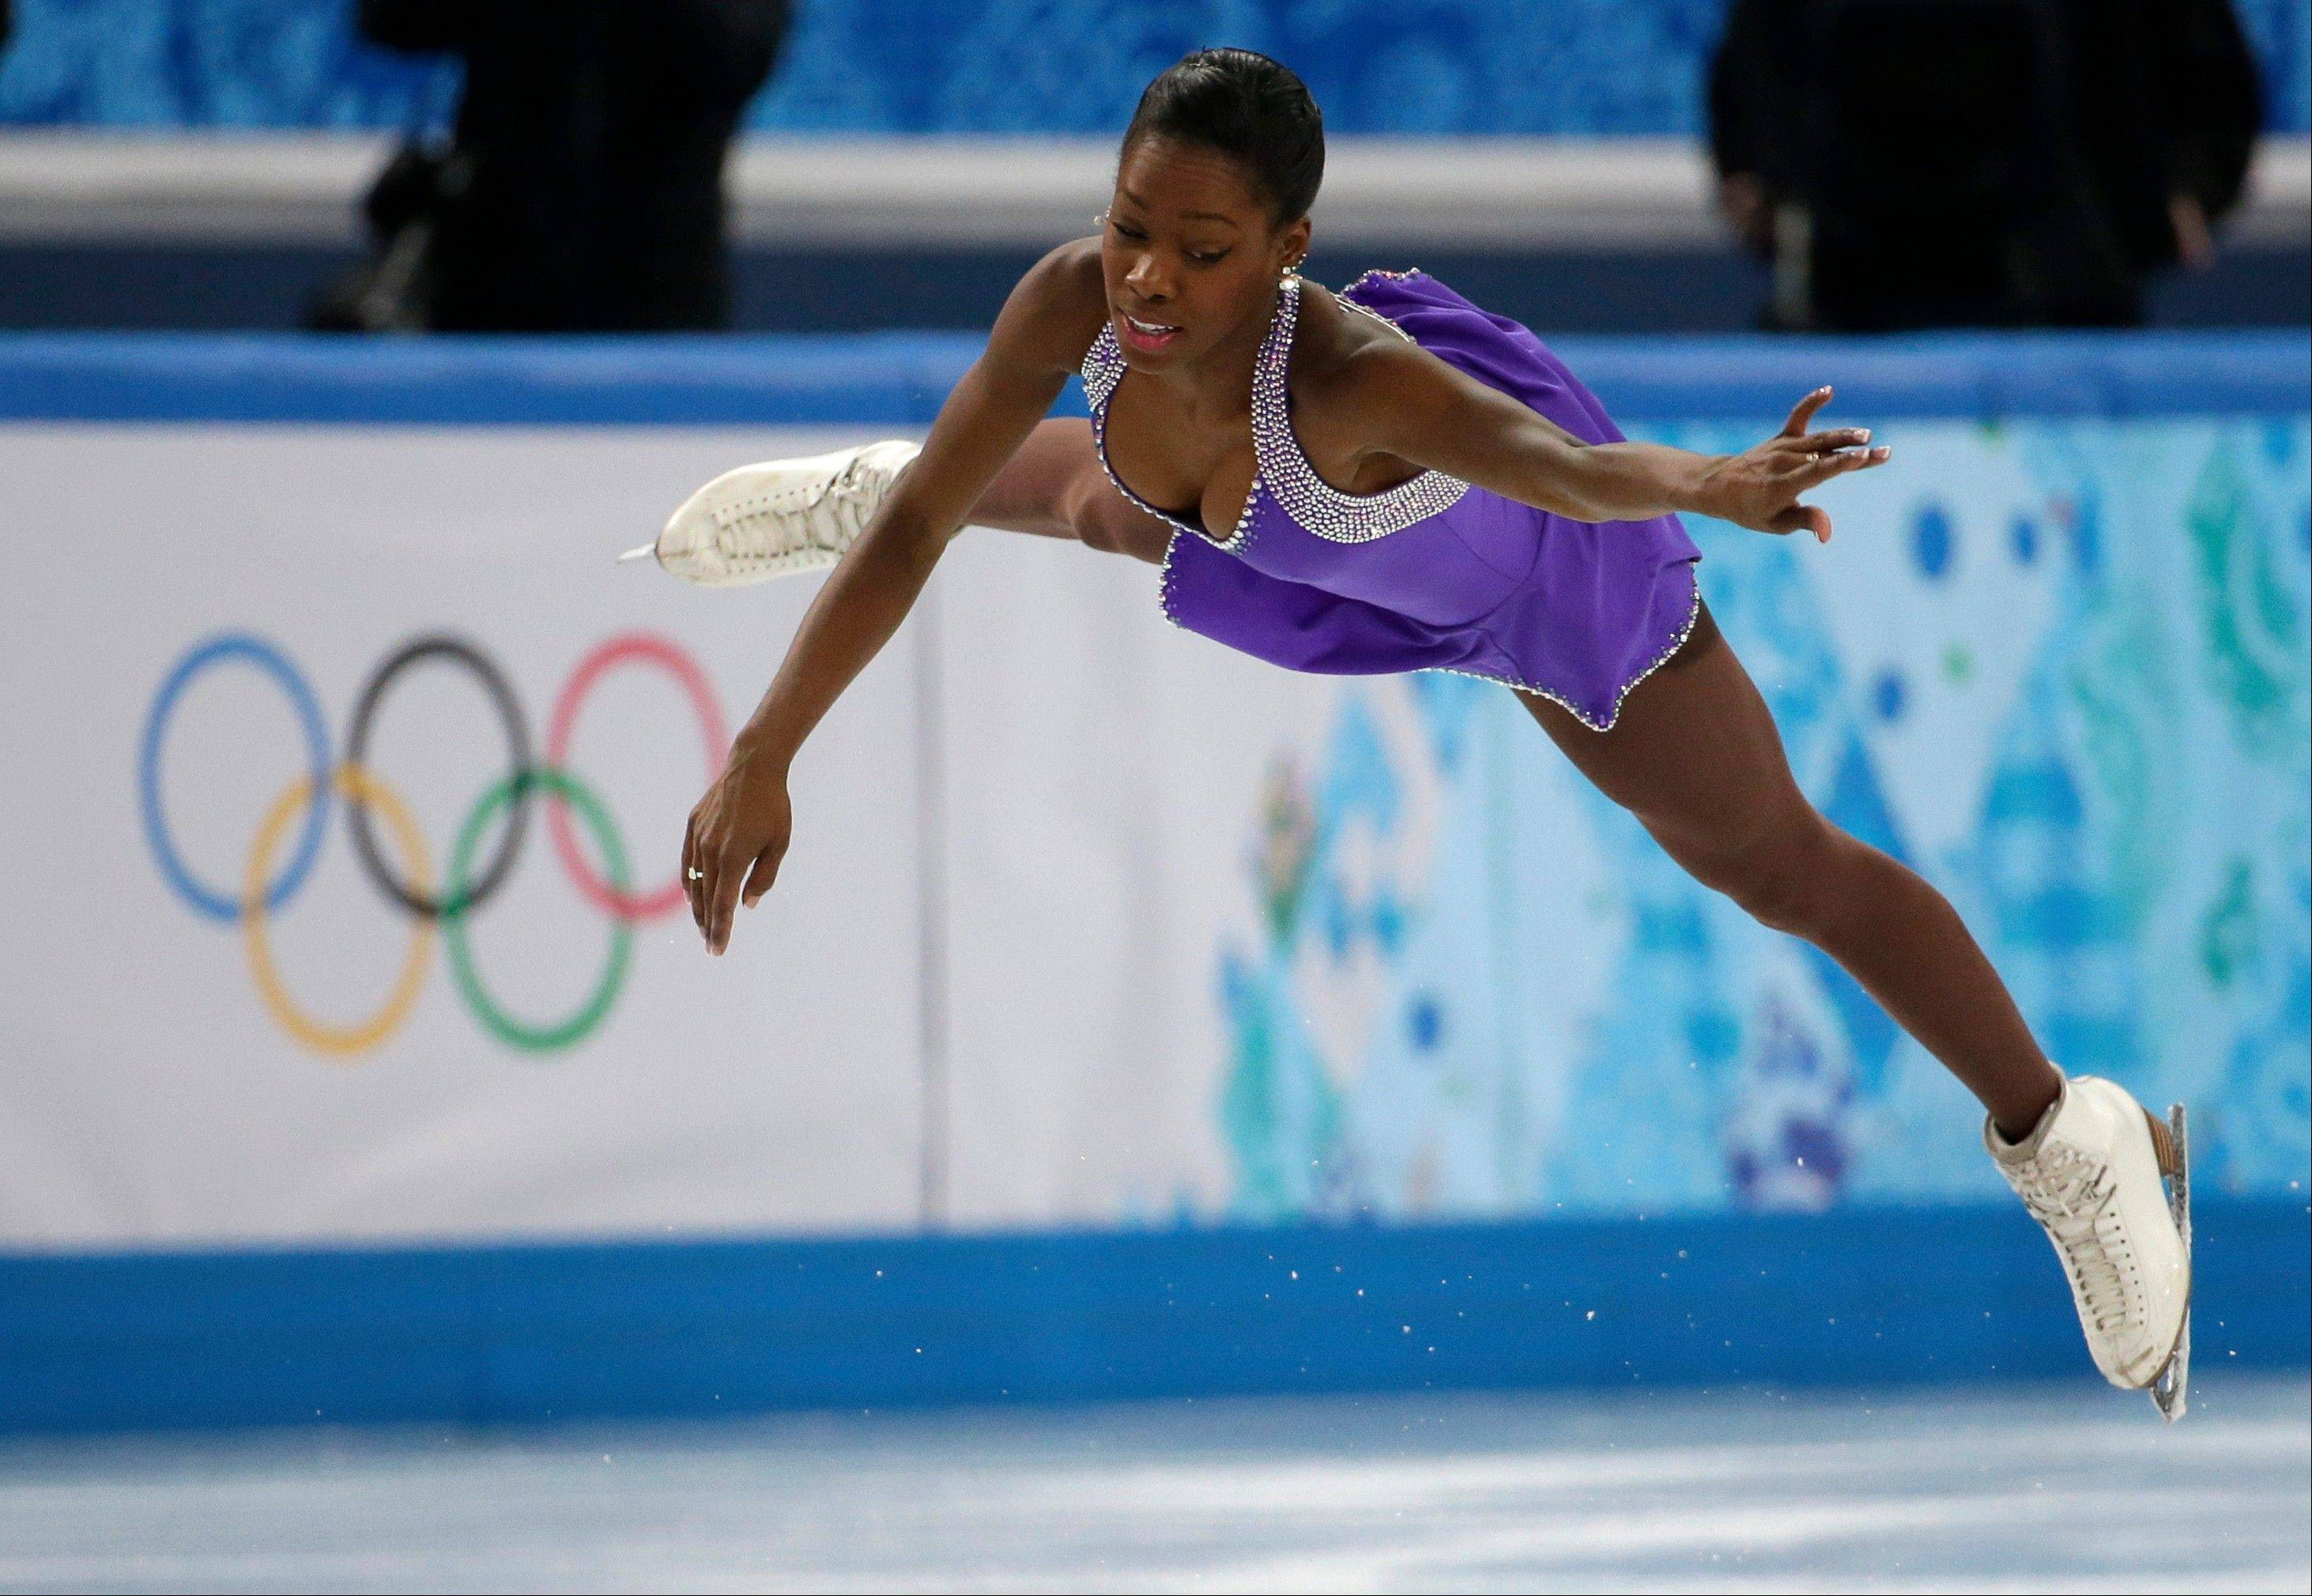 Vanessa James compete in the team pairs short program figure skating competition with Morgan Cipres of France at the Iceberg Skating Palace during the 2014 Winter Olympics.